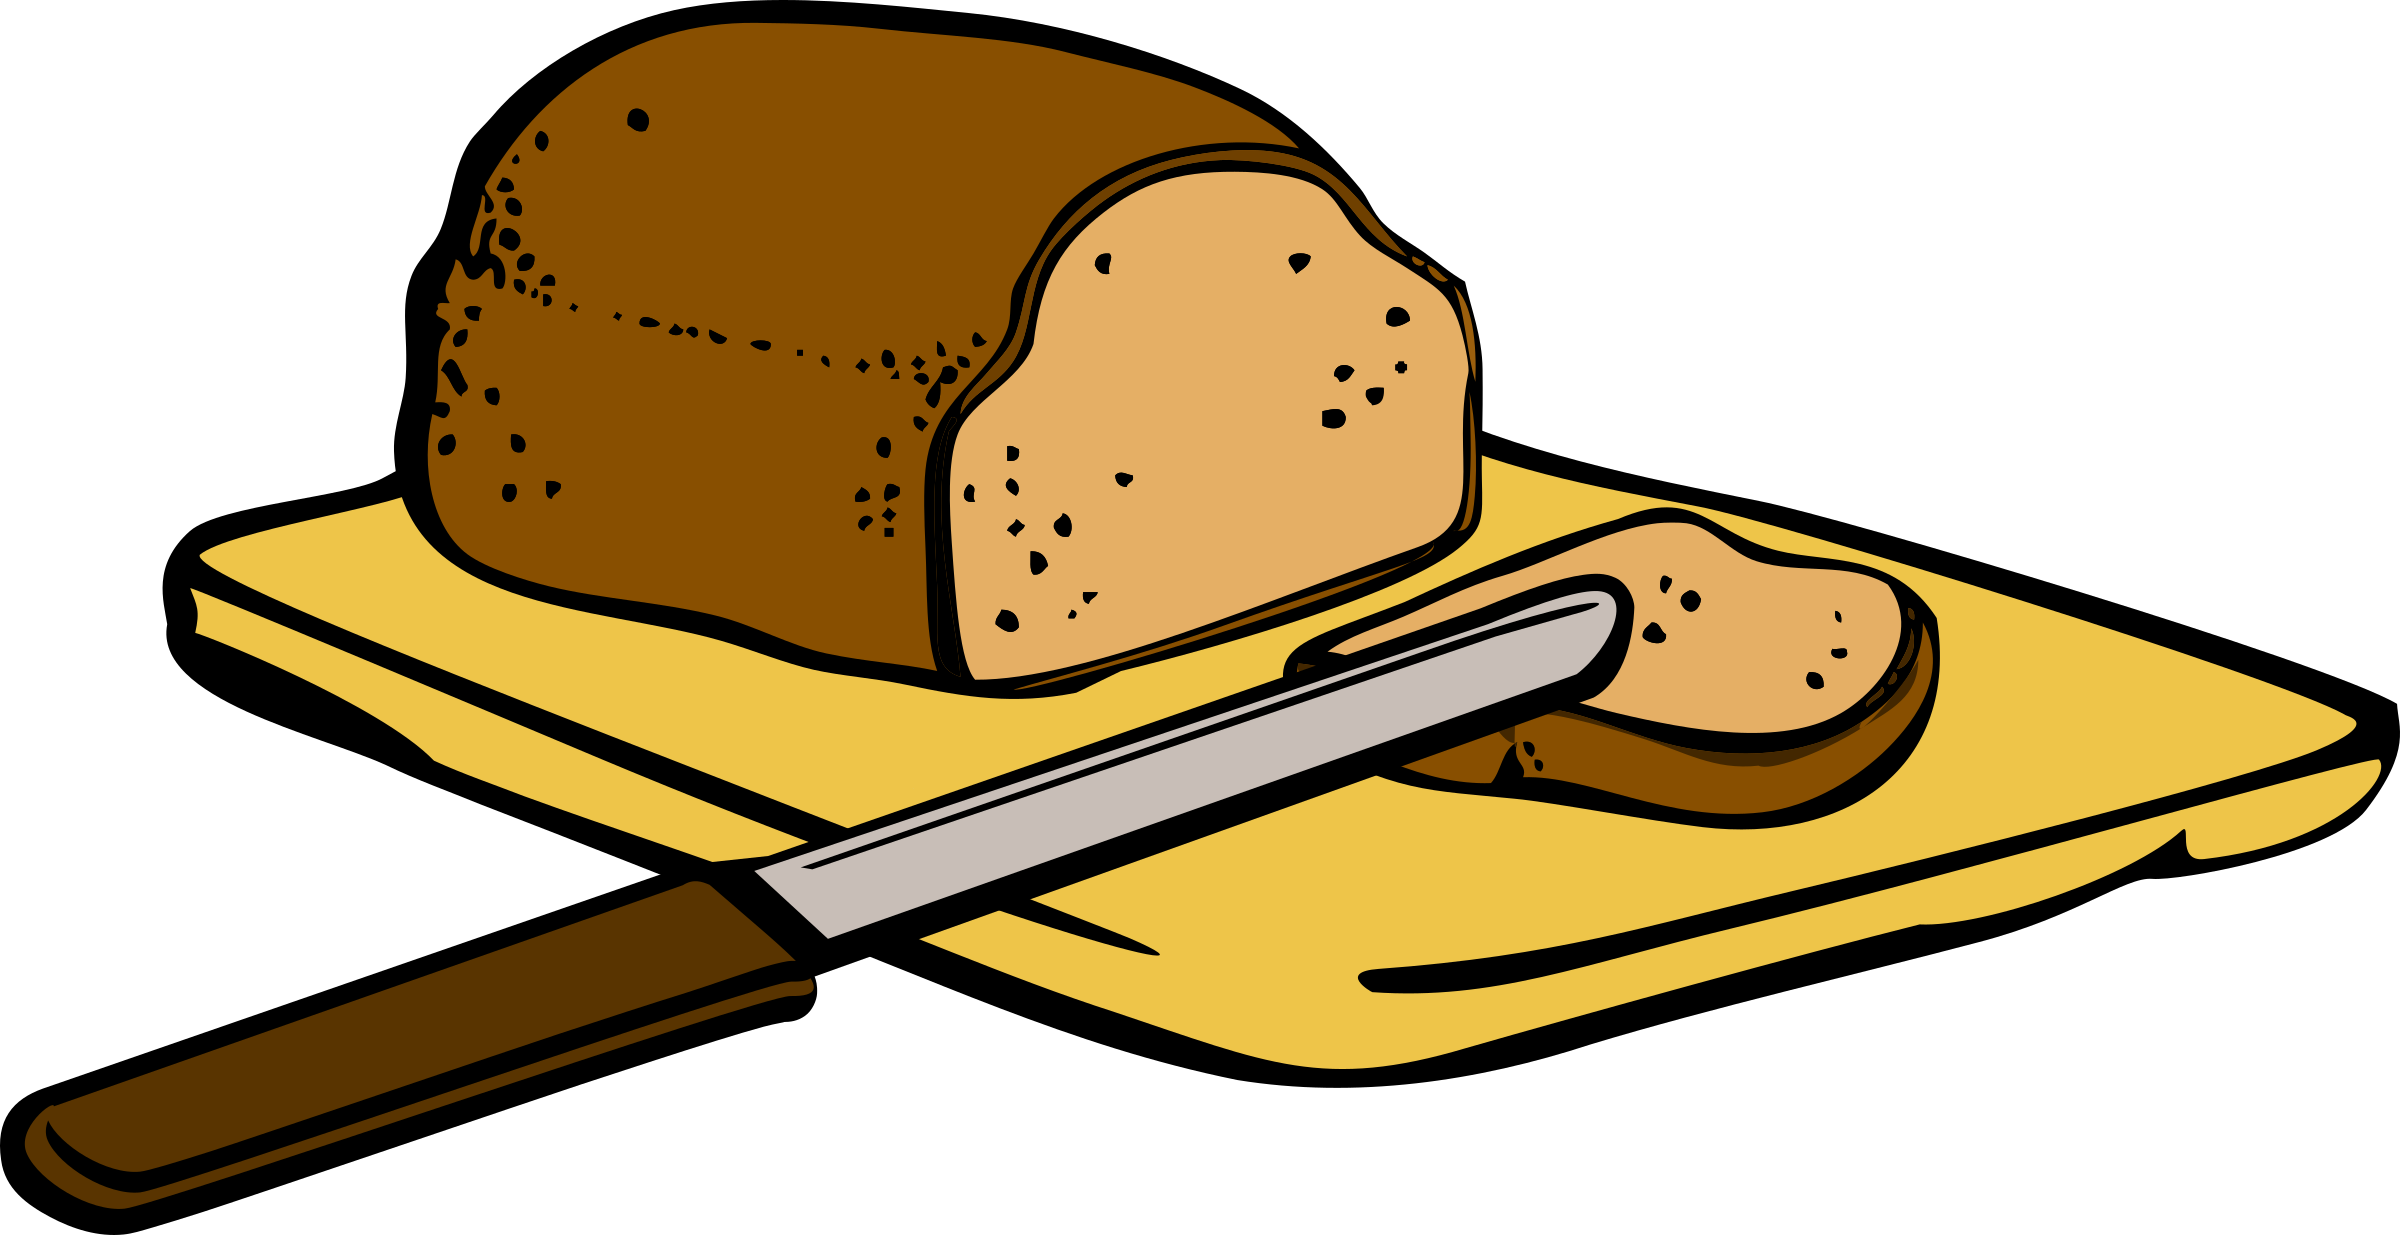 Bread with knife on cutting board by rdevries